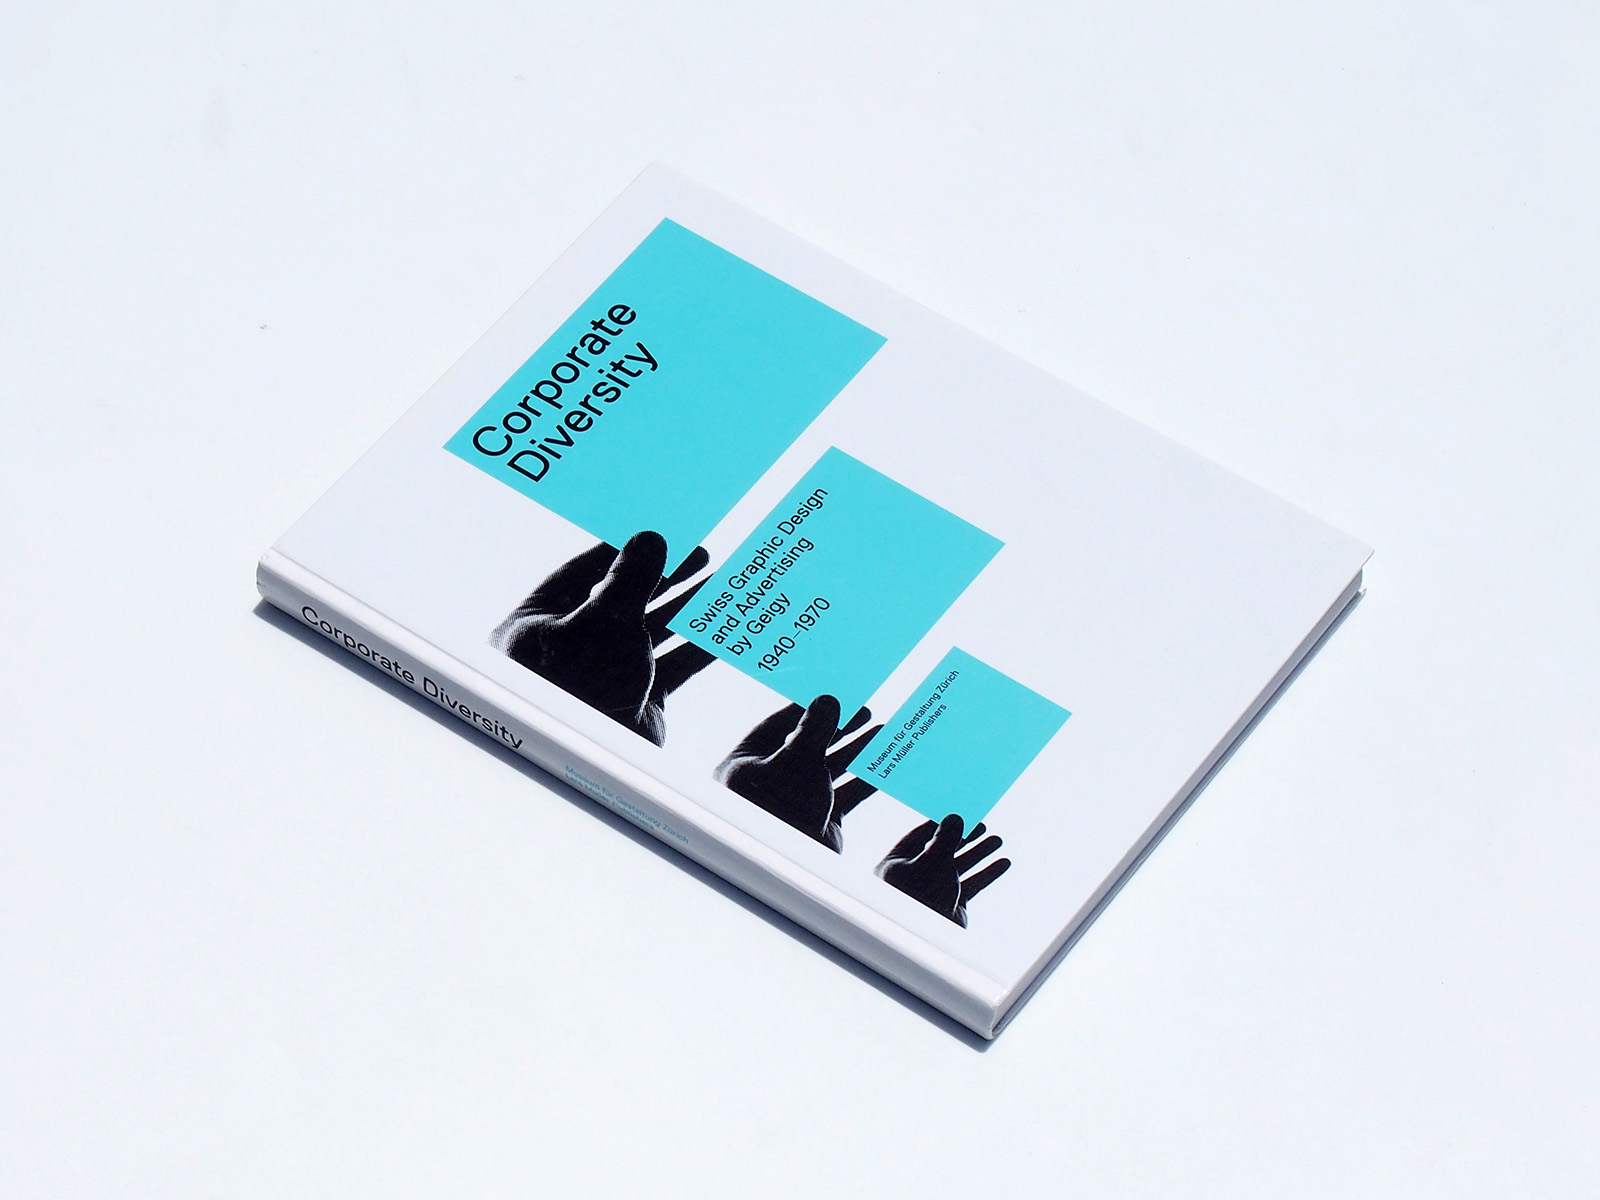 Corporate Diversity: Swiss Graphic Design and Advertising by